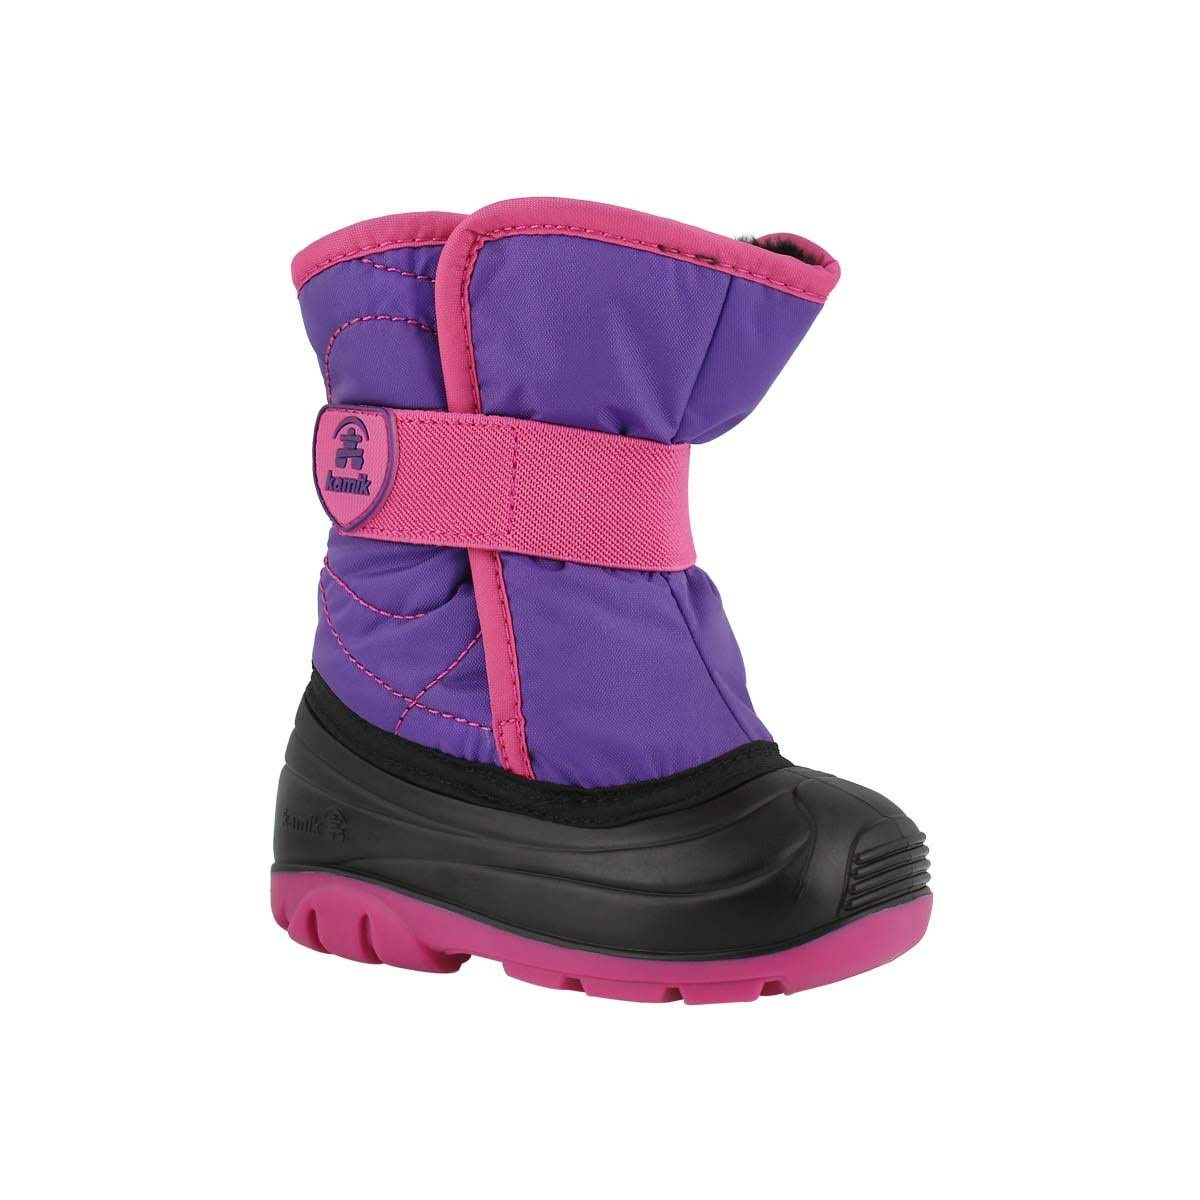 AFO SMO KAFO orthotic boot kids